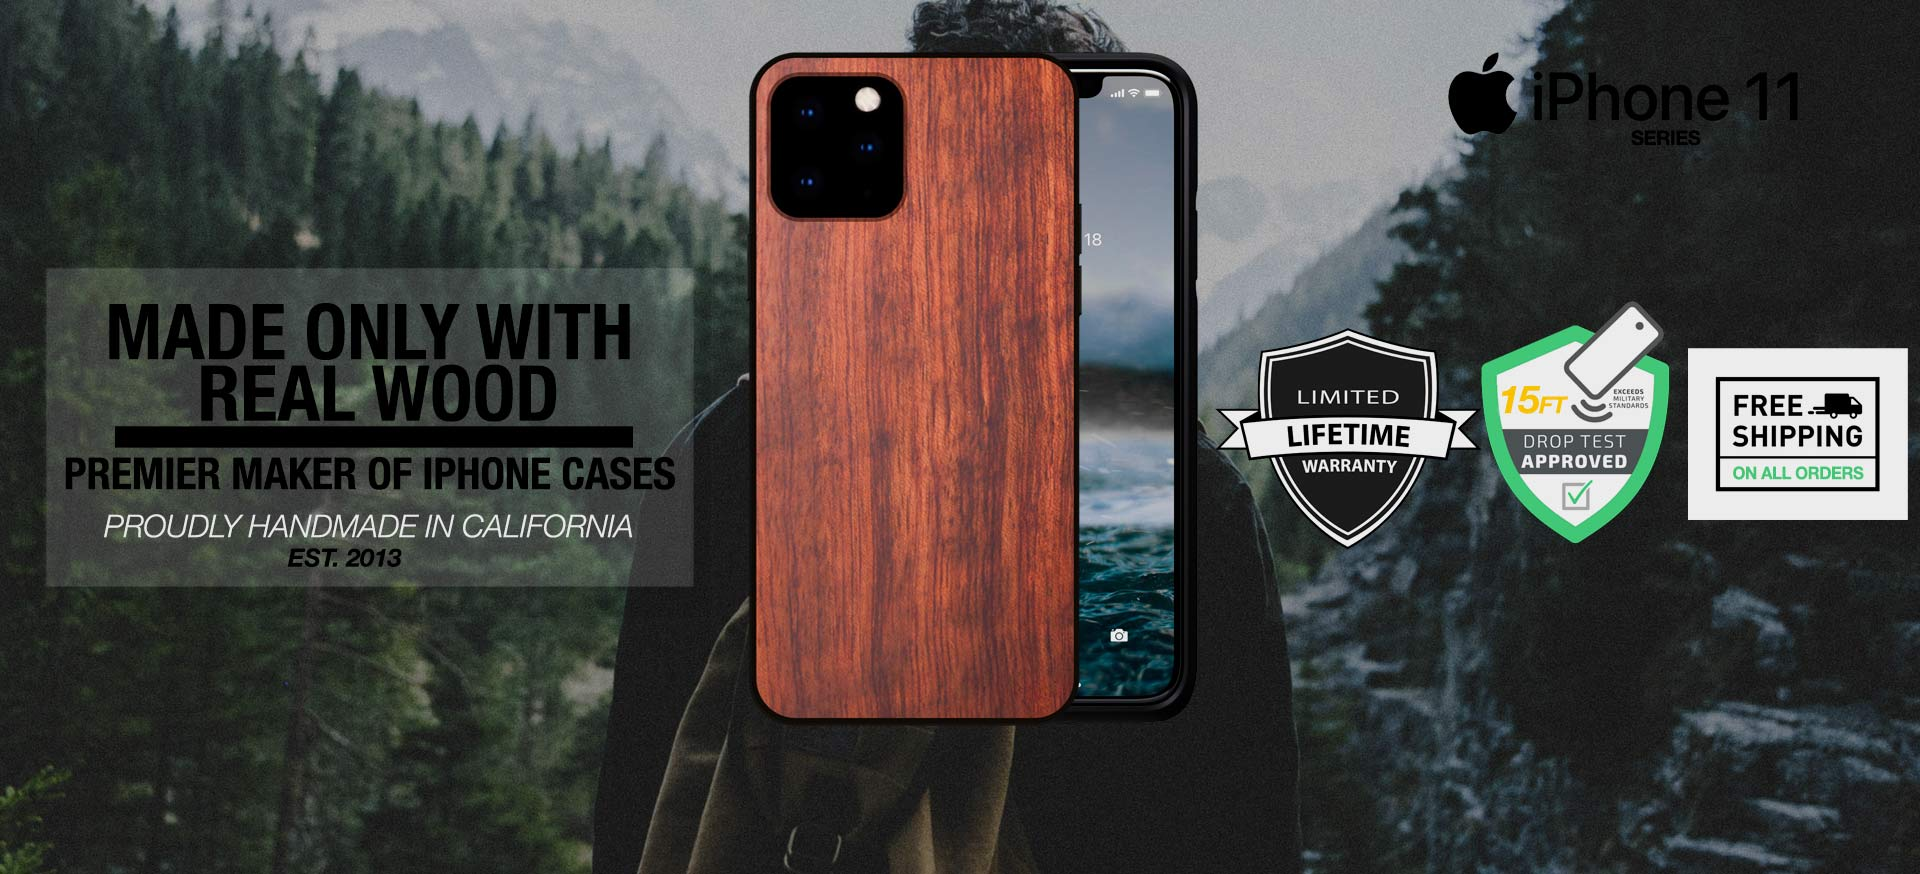 iPhone 11 Wood Cases - iPhone 11 Pro Wooden Case Cover with Natural Real Mahogany/Wood Material and Unique Design Handmade Carved iPhone 11 Max Pro